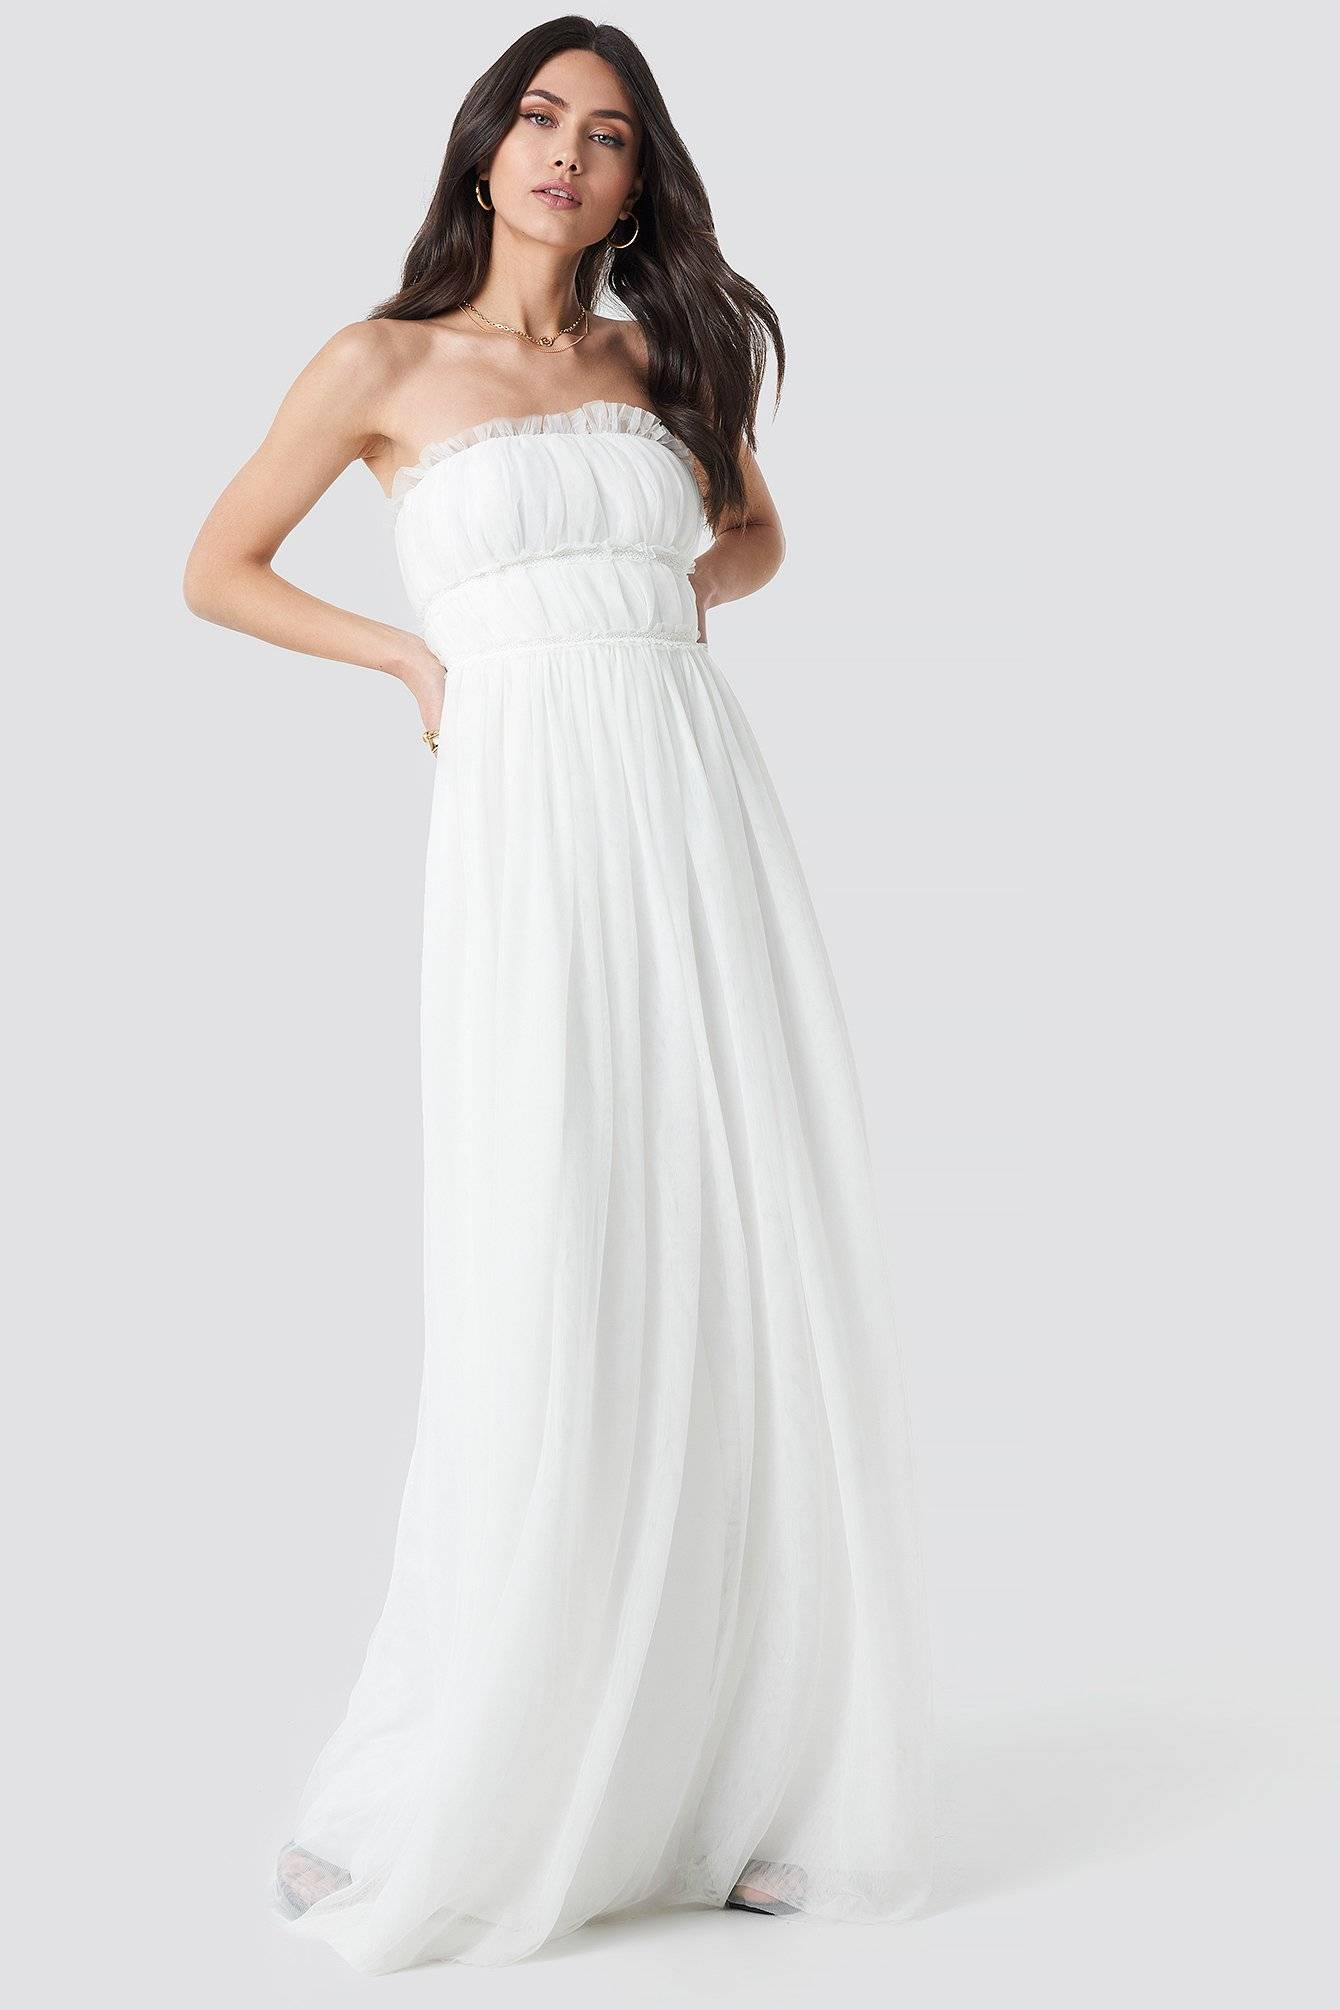 Image of Trendyol Detailed Evening Dress - White